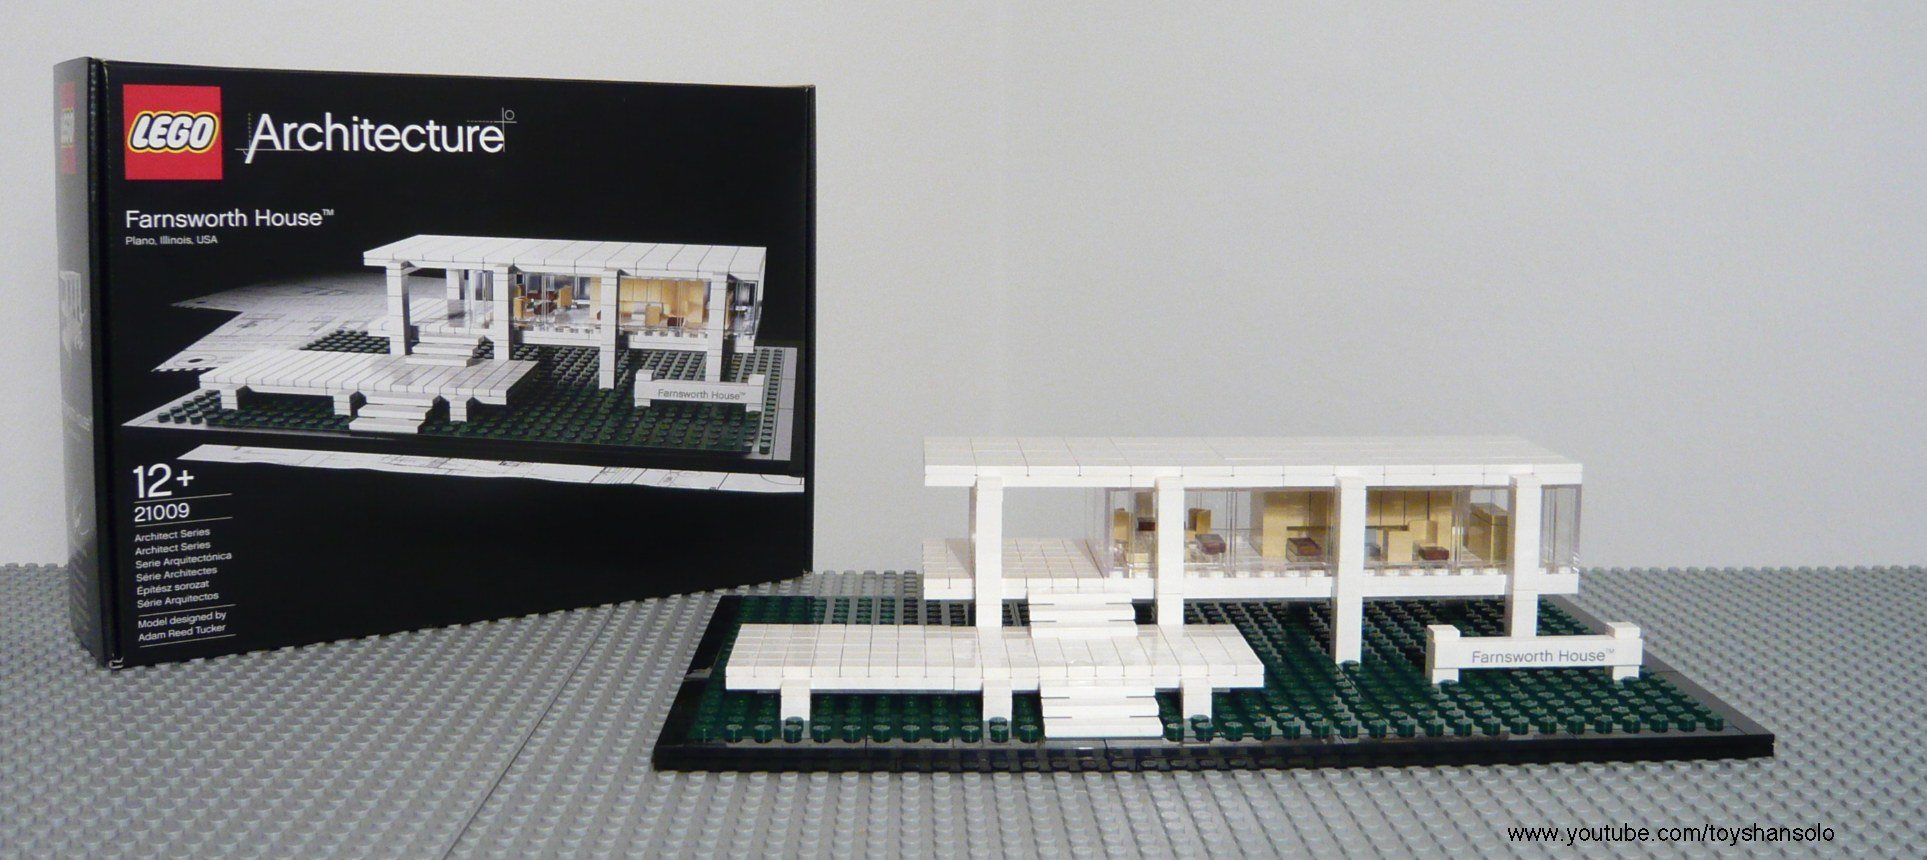 1a1a2_21009_farnsworth_house_a.jpg